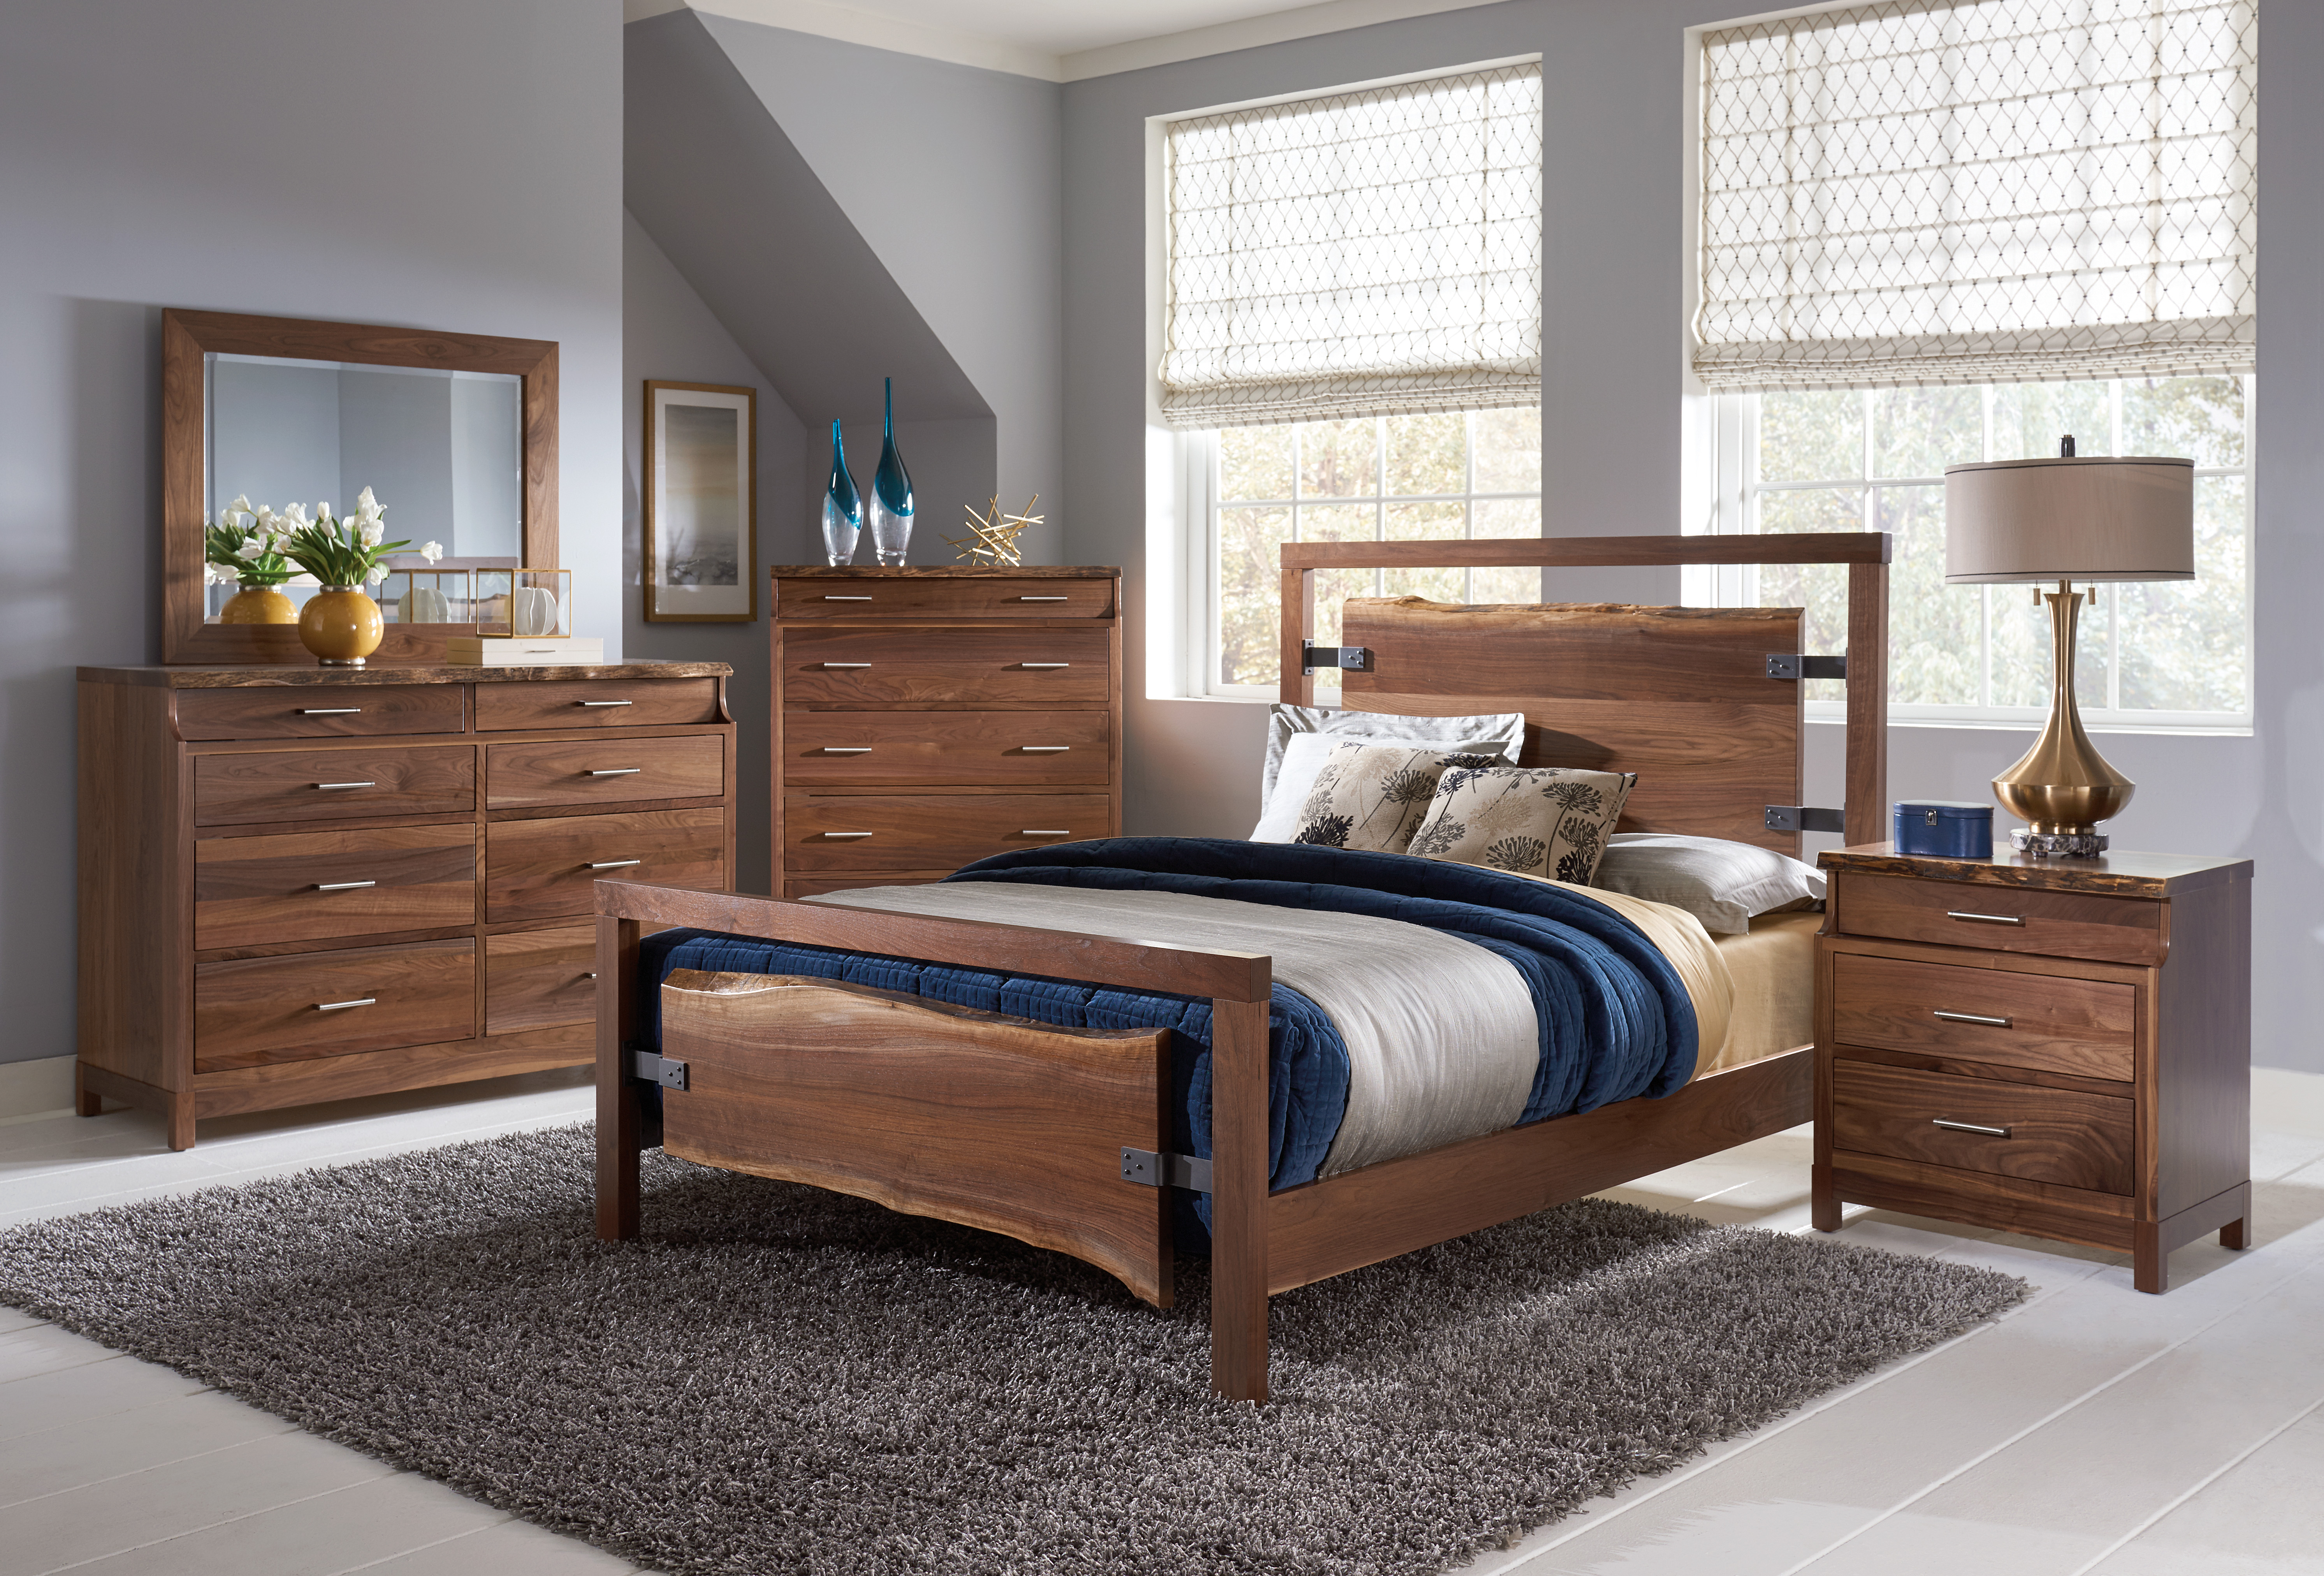 Westmere Bedroom Collection shown in Walnut with a Natural Finish at Mattie Lu